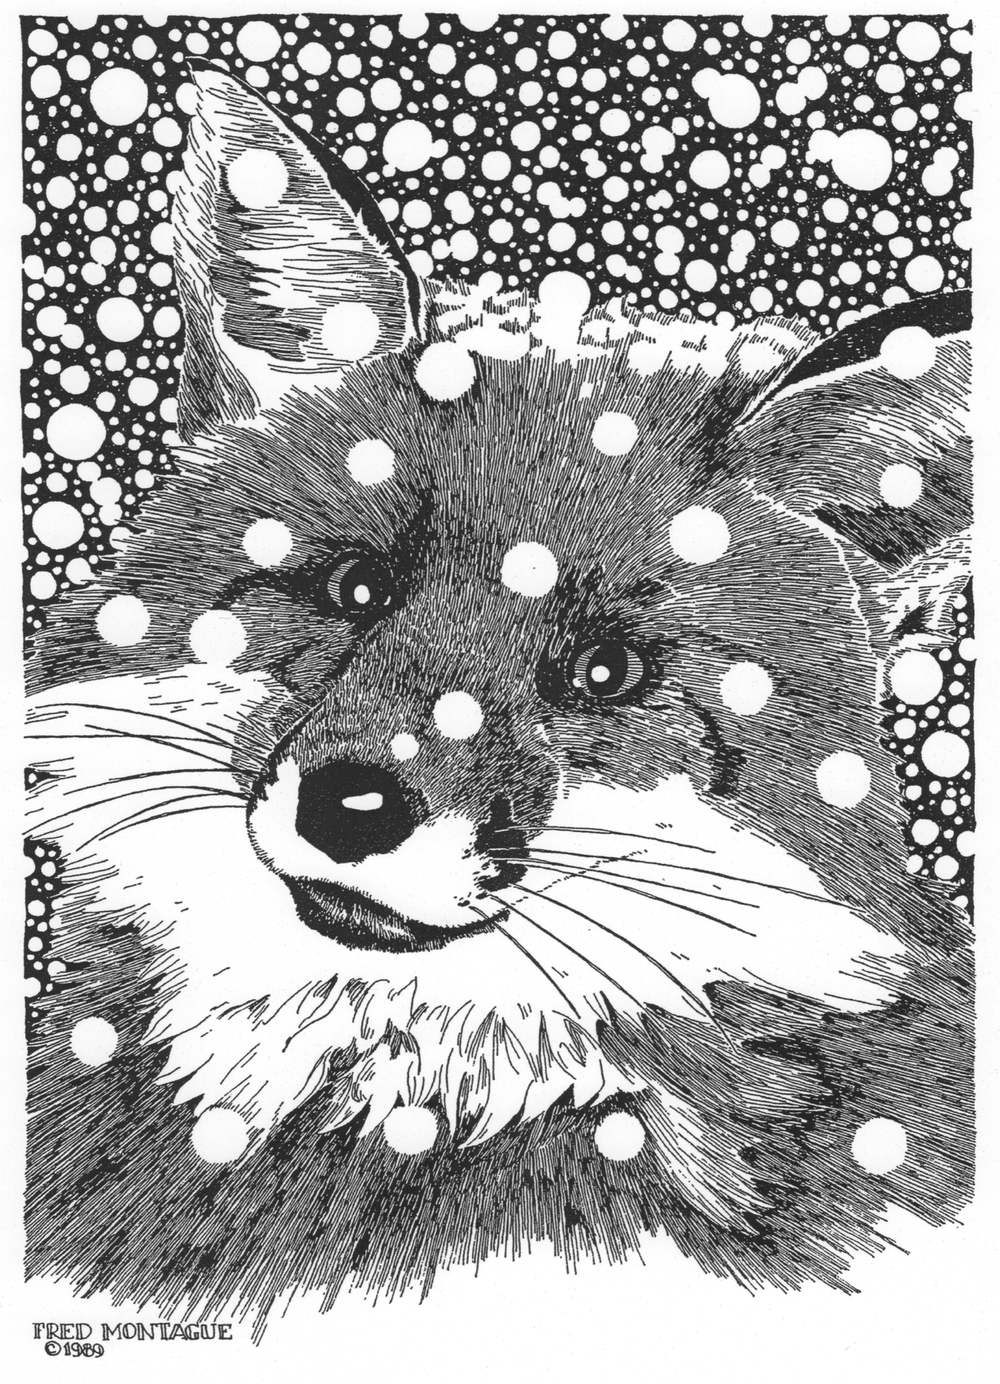 Snow Fox• © Fred Montague  Letterpress Print • image 8.5 x 11.5 • matted 16 x 20  Sold Out